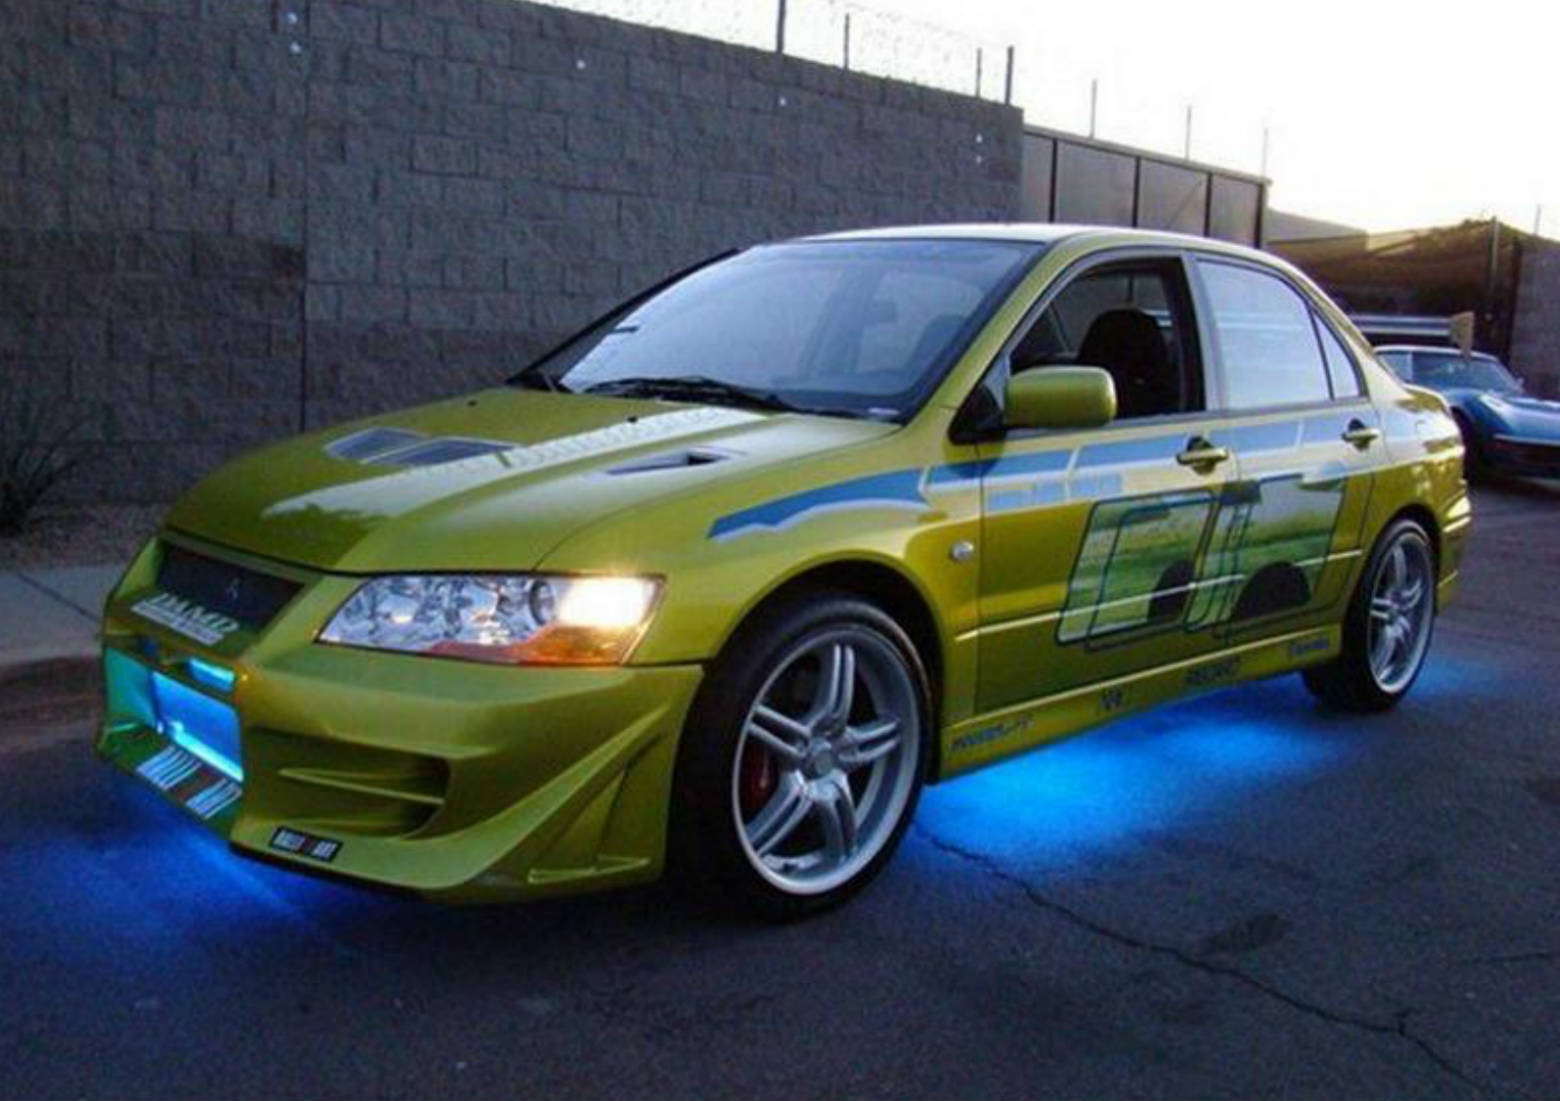 2 Fast 2 Furious Paul Walker Mitsubishi Evo2 Muscle Cars